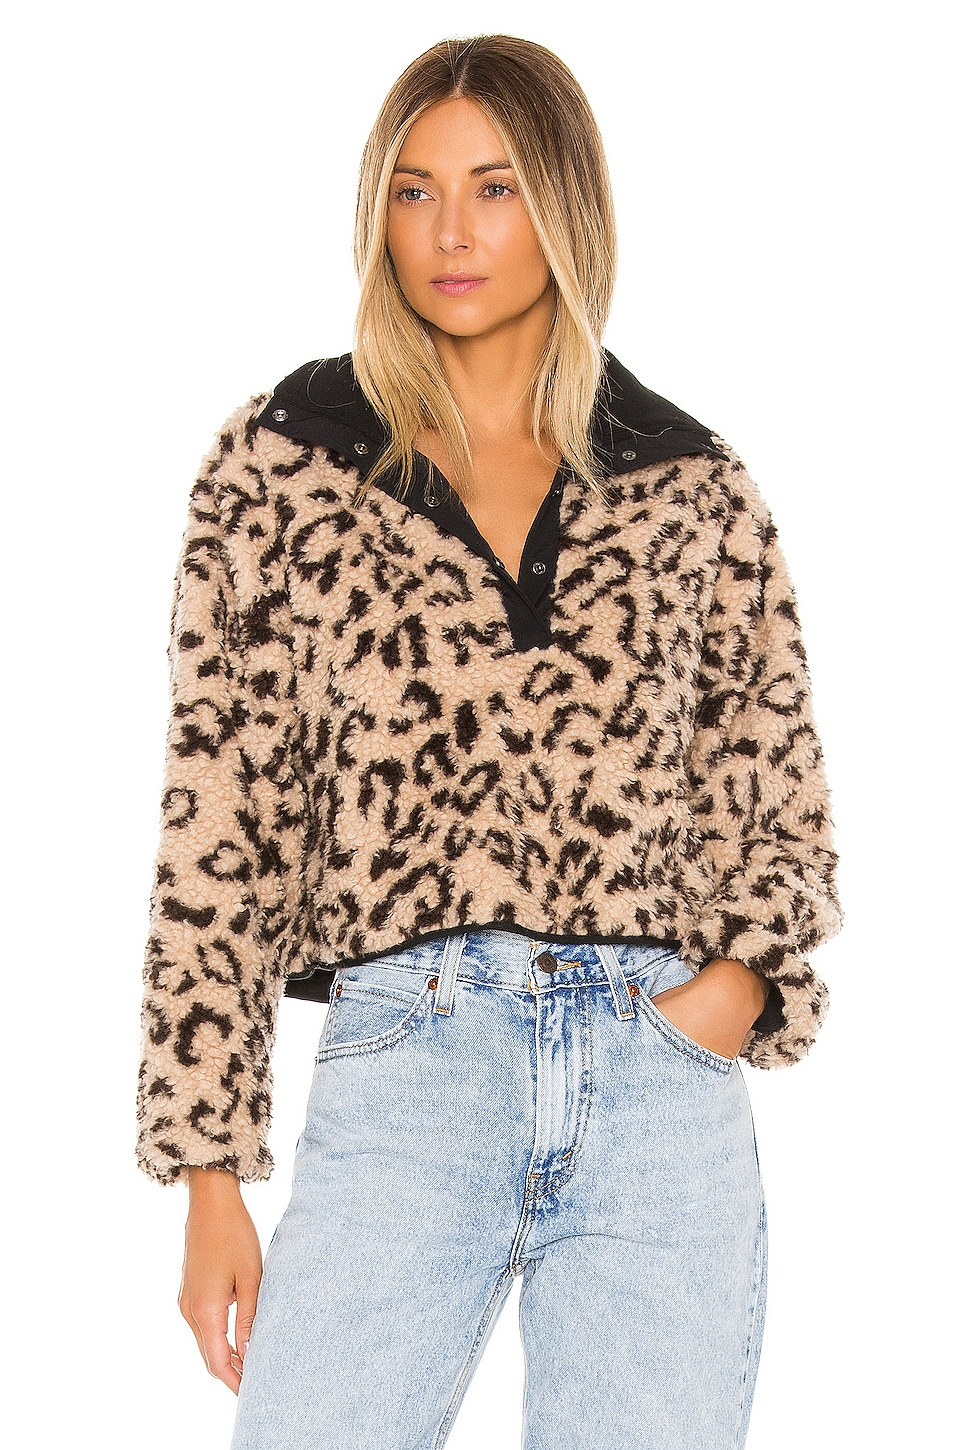 SAYLOR Rianne Pullover Jacket in Cheetah